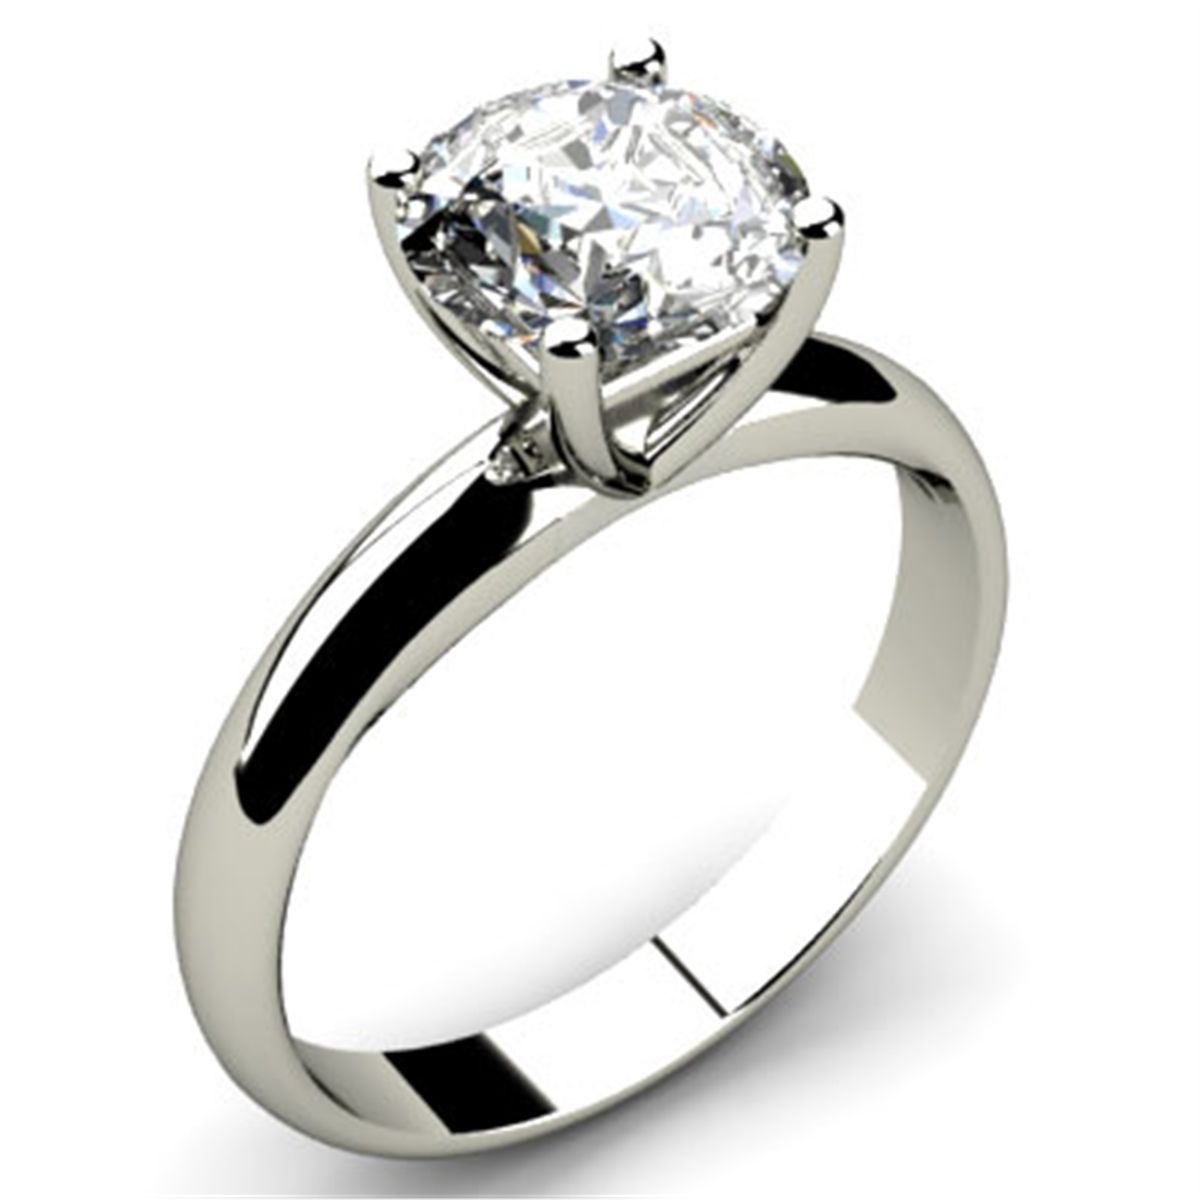 set a ring cut solitaire four carat with cushion diamond product engagement min prong